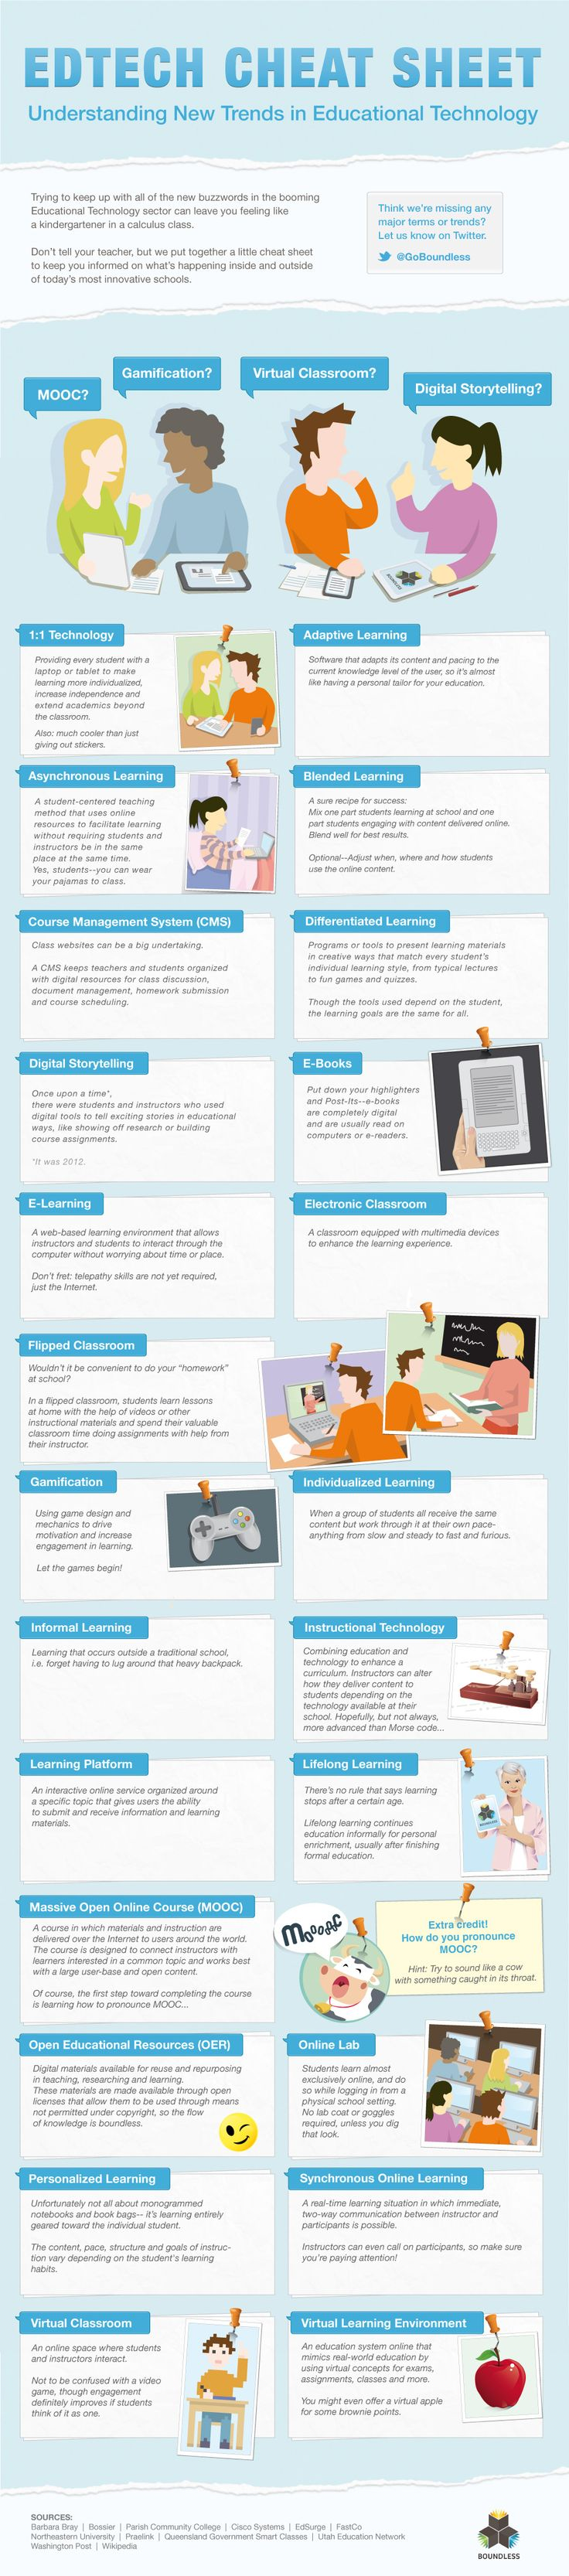 EdTech Cheat Sheet Infographic. Do you hear a bunch of edtech trend terms buzzing around but don't really know what they mean? This is for you!